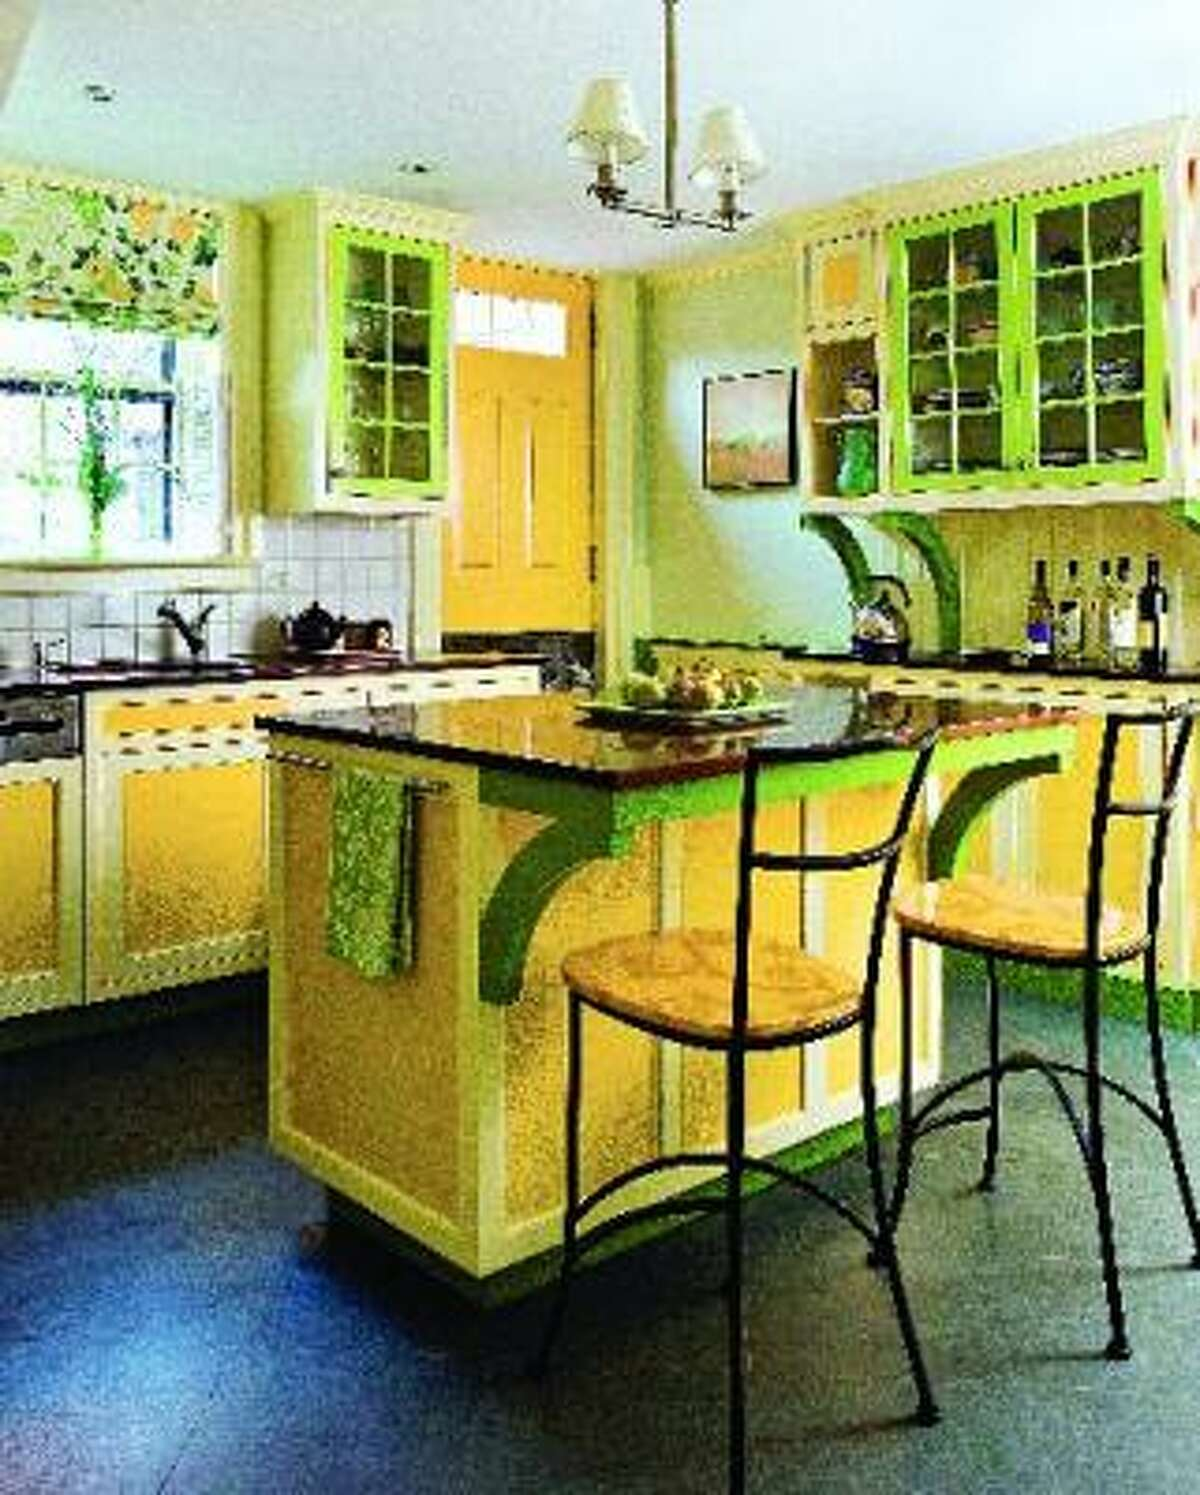 A bright paint job updates this older kitchen. From All New Kitchen Idea Book by Joanne Kellar Bouknight.